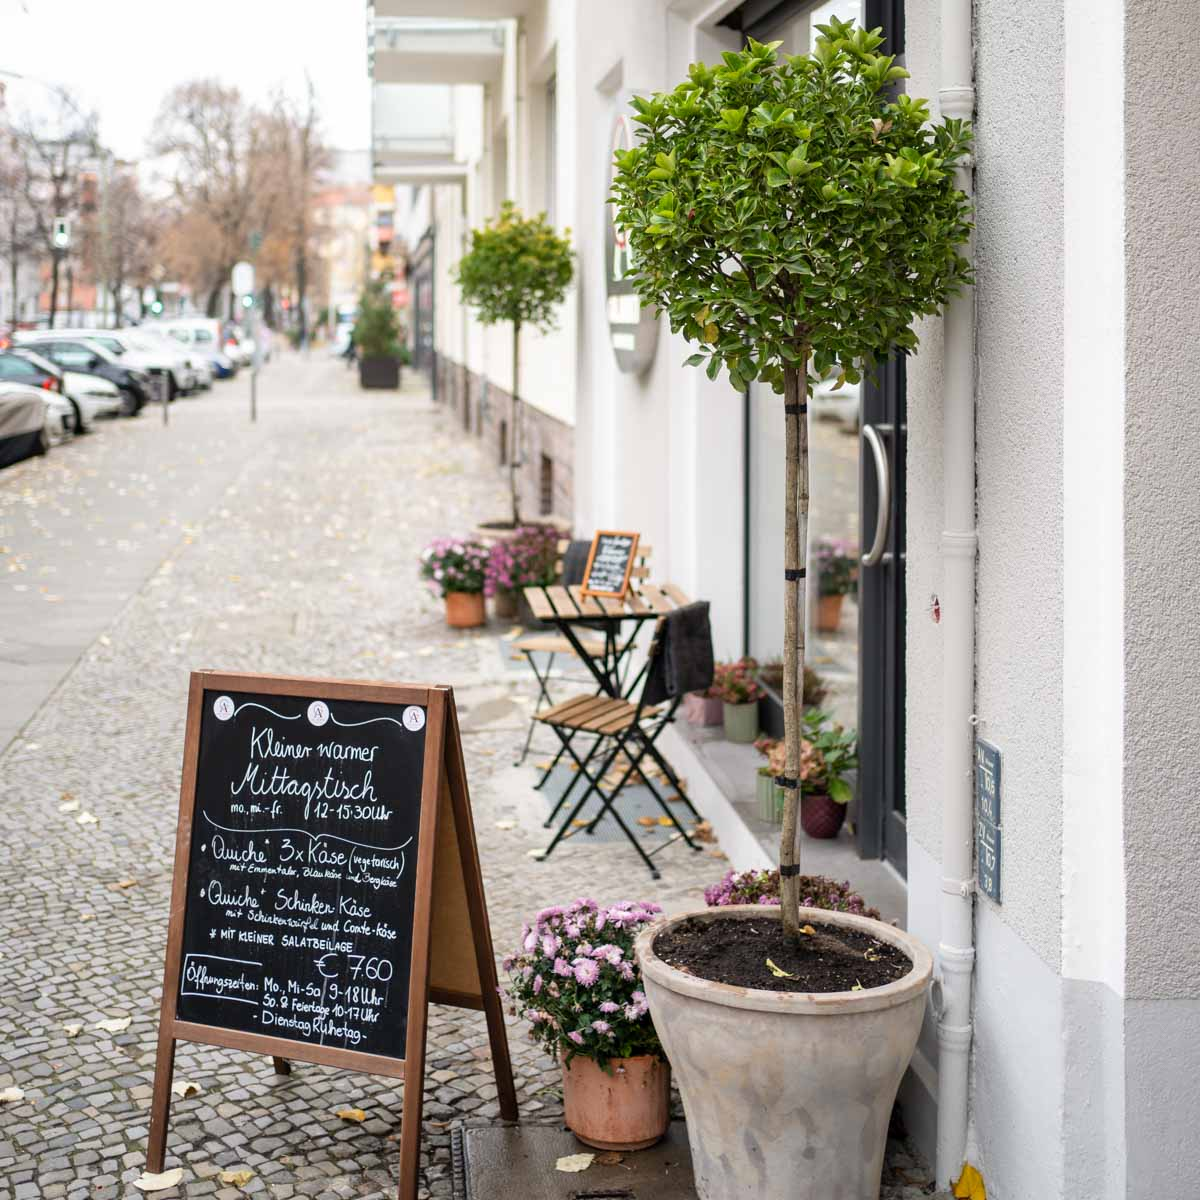 Patisserie Gil Avnon Charlottenburg ©The Dude for Food